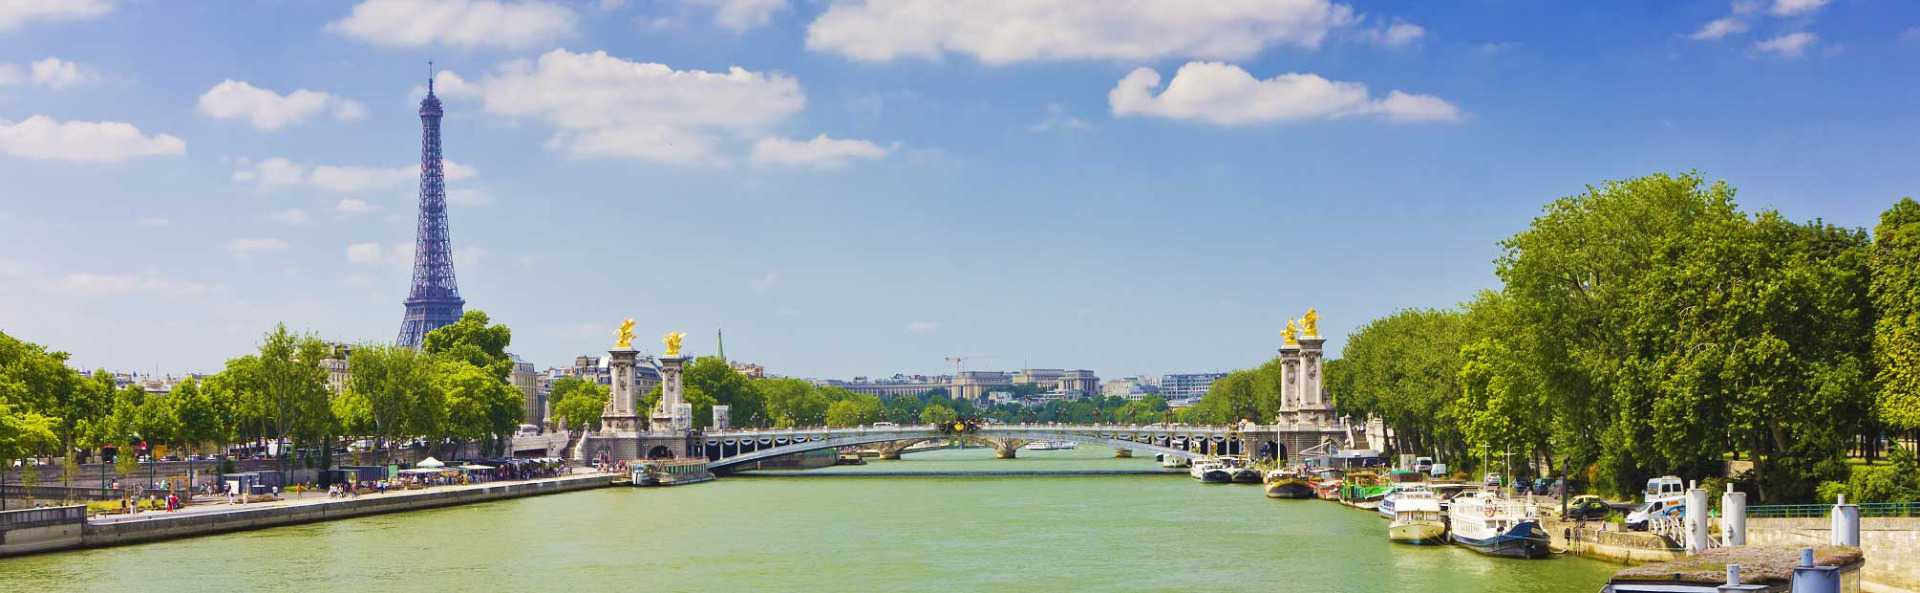 Paris River Seine Daytime View